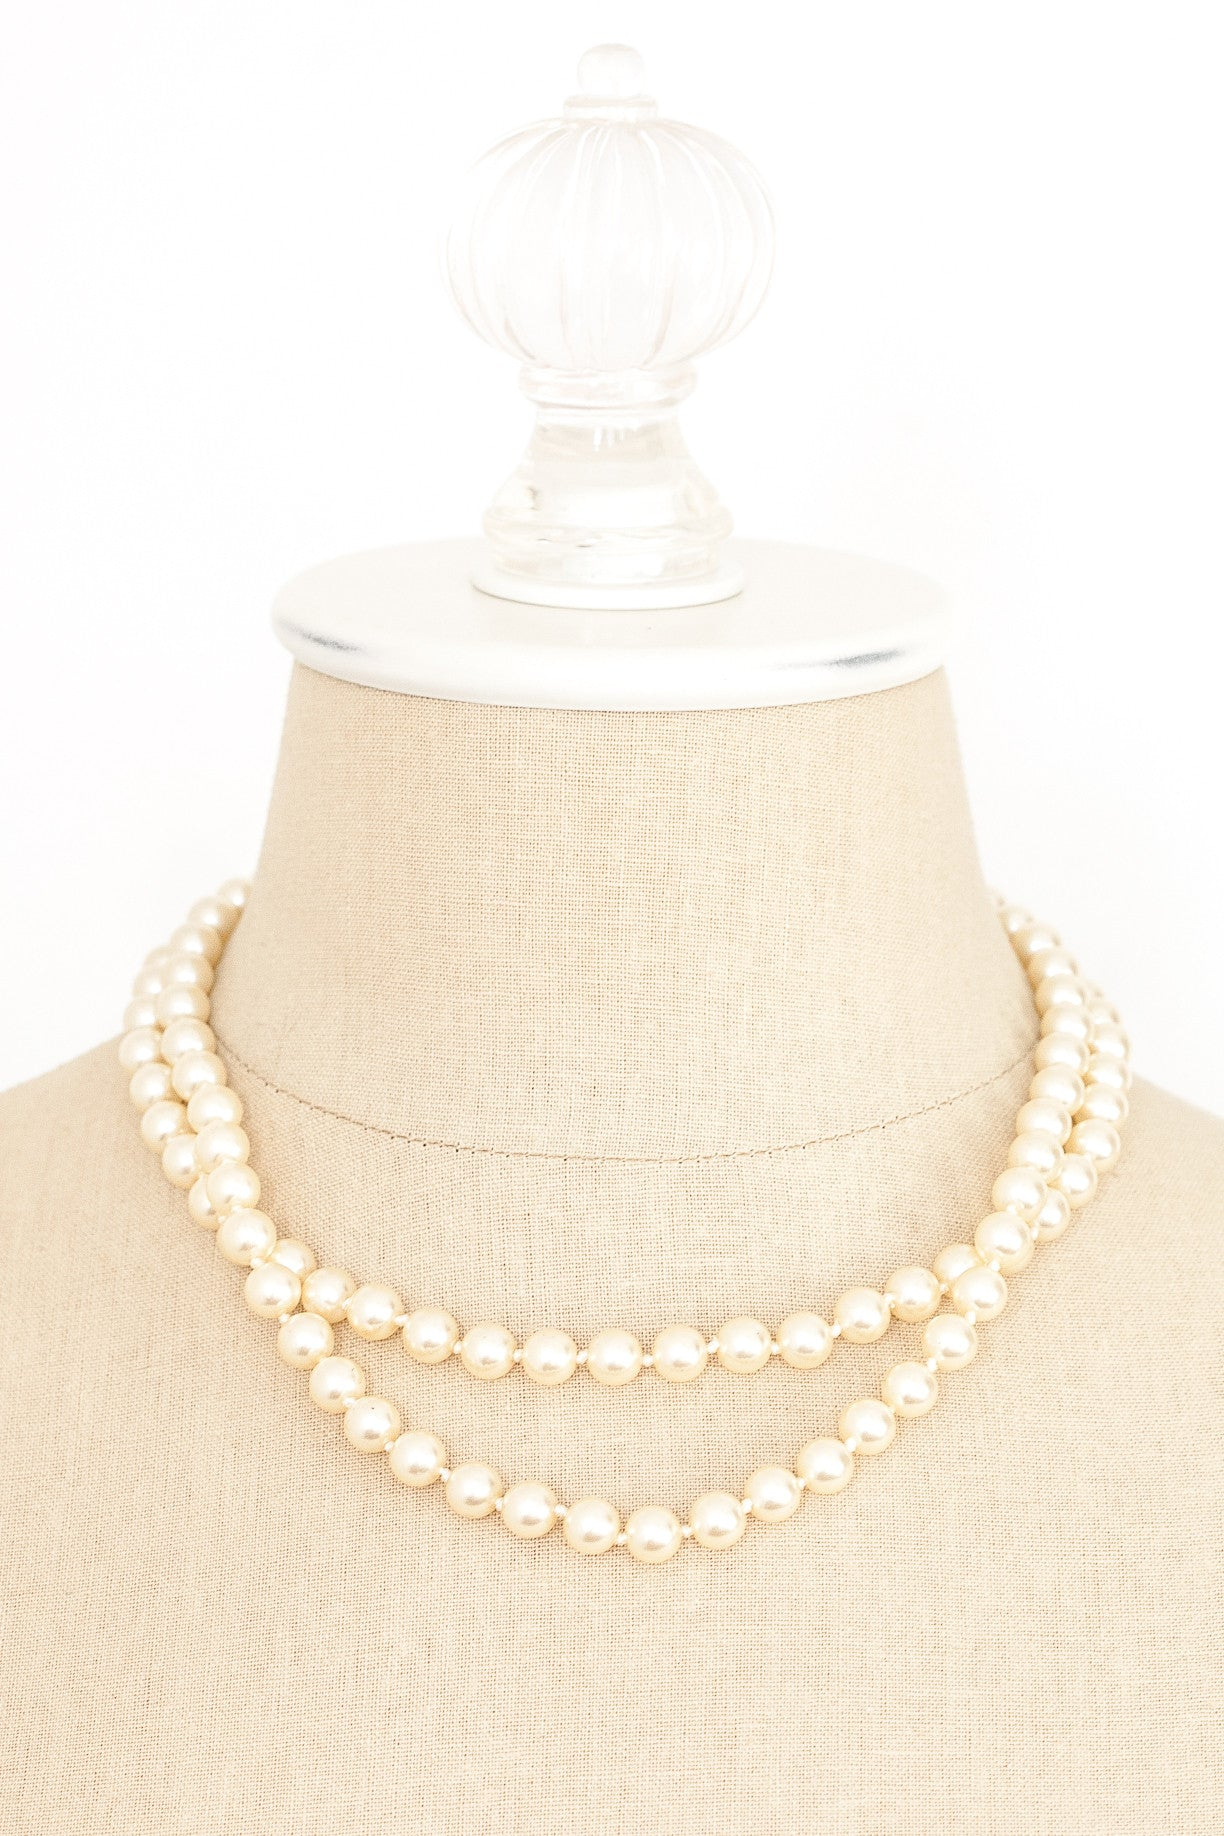 80's__Nolan Miller__Multi Pearl Necklace